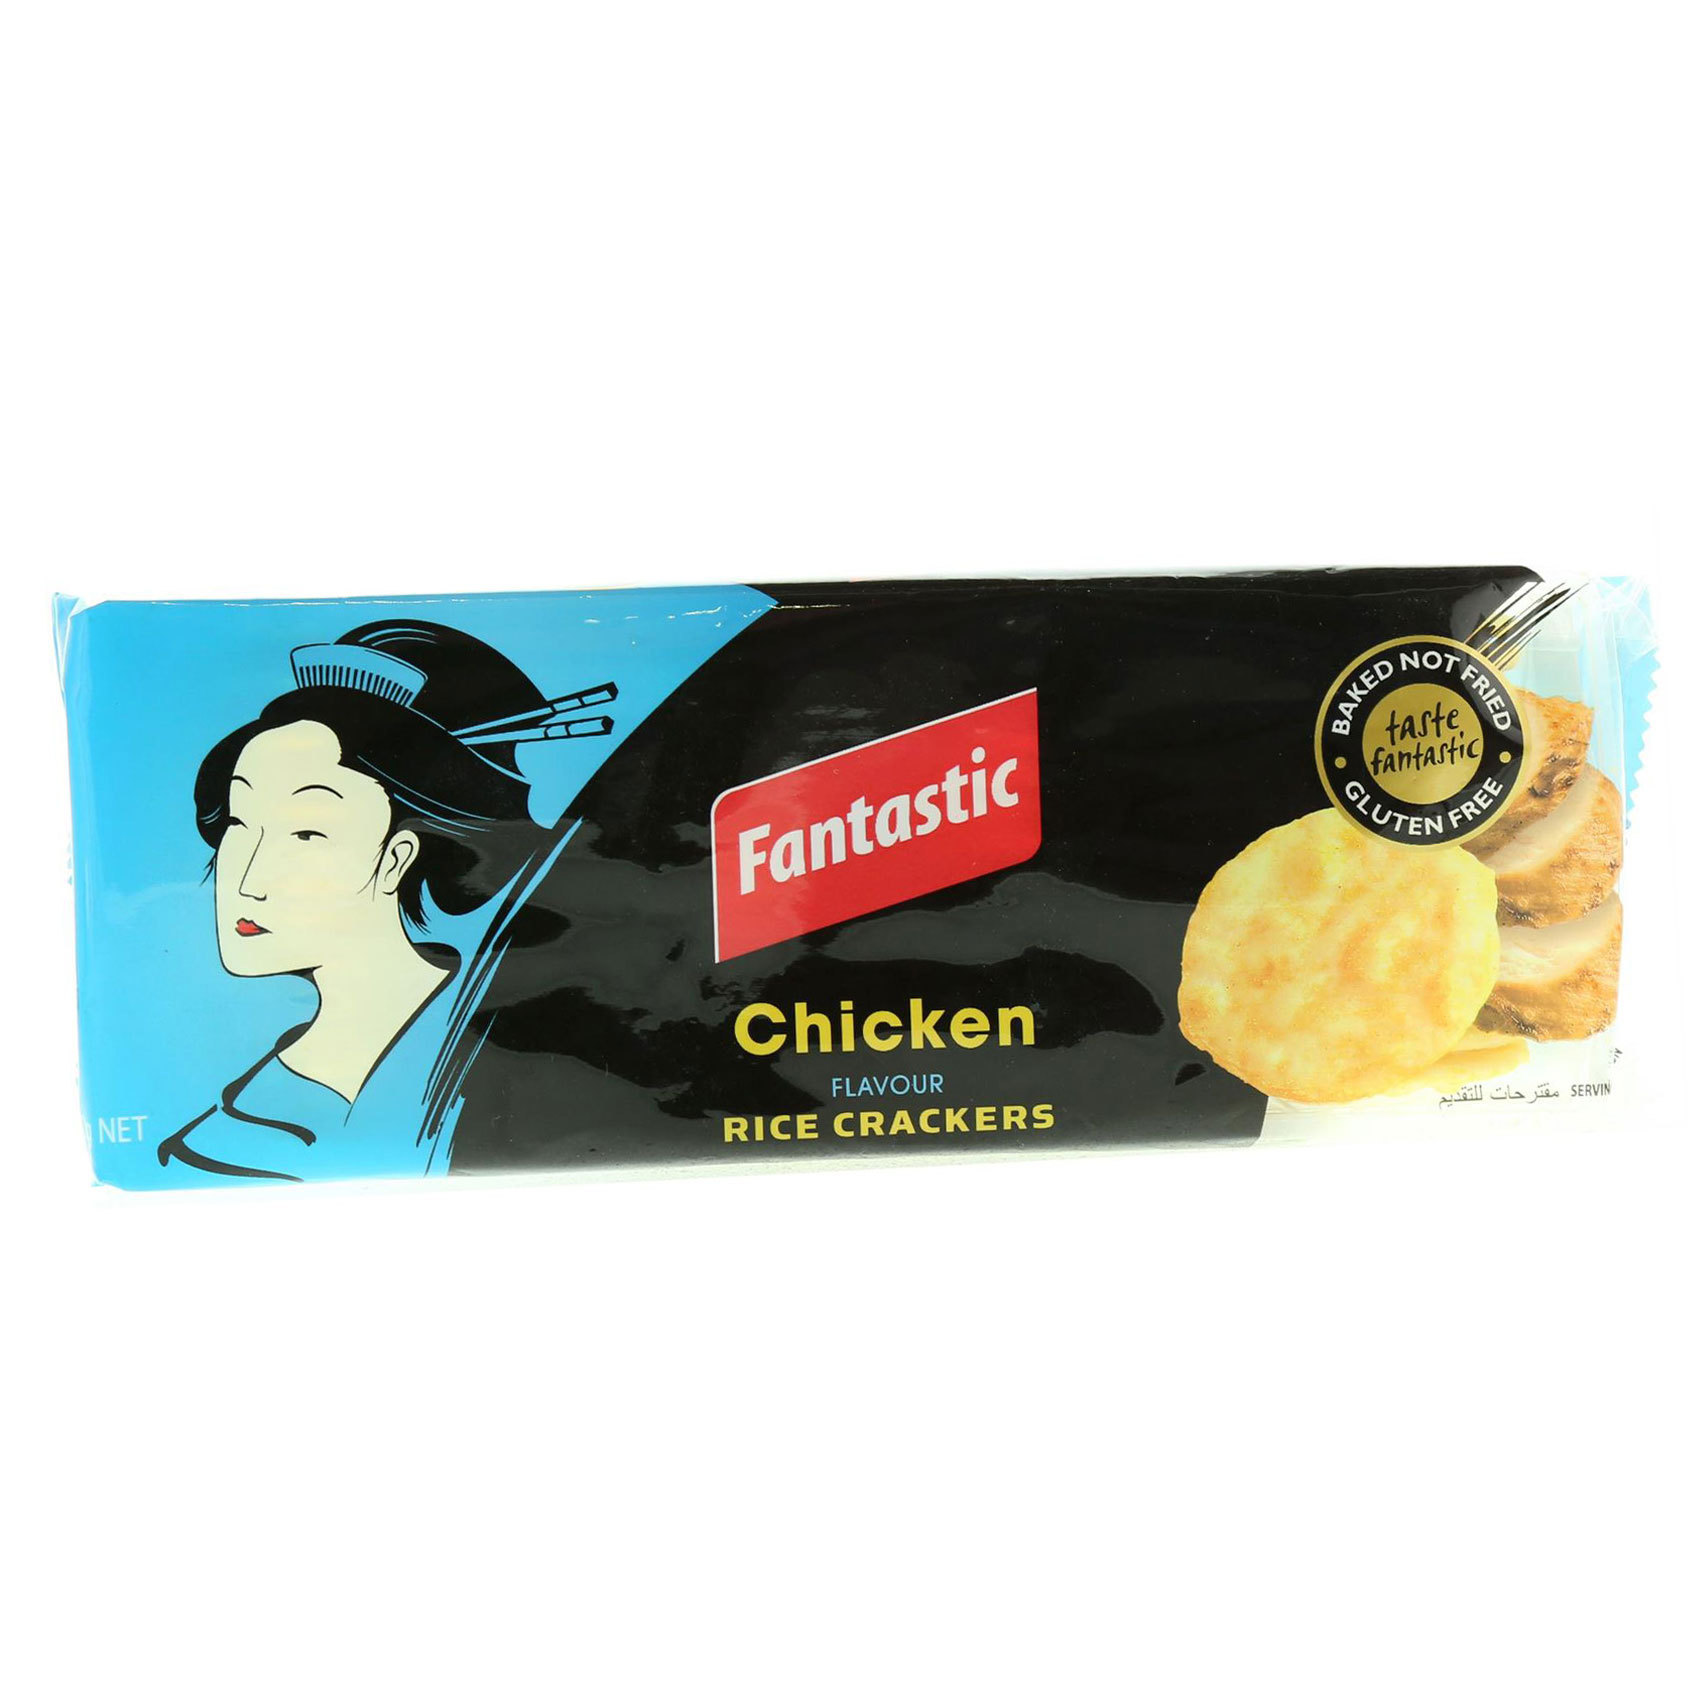 FANTASTIC RICE CRACKERS CHICKEN 100